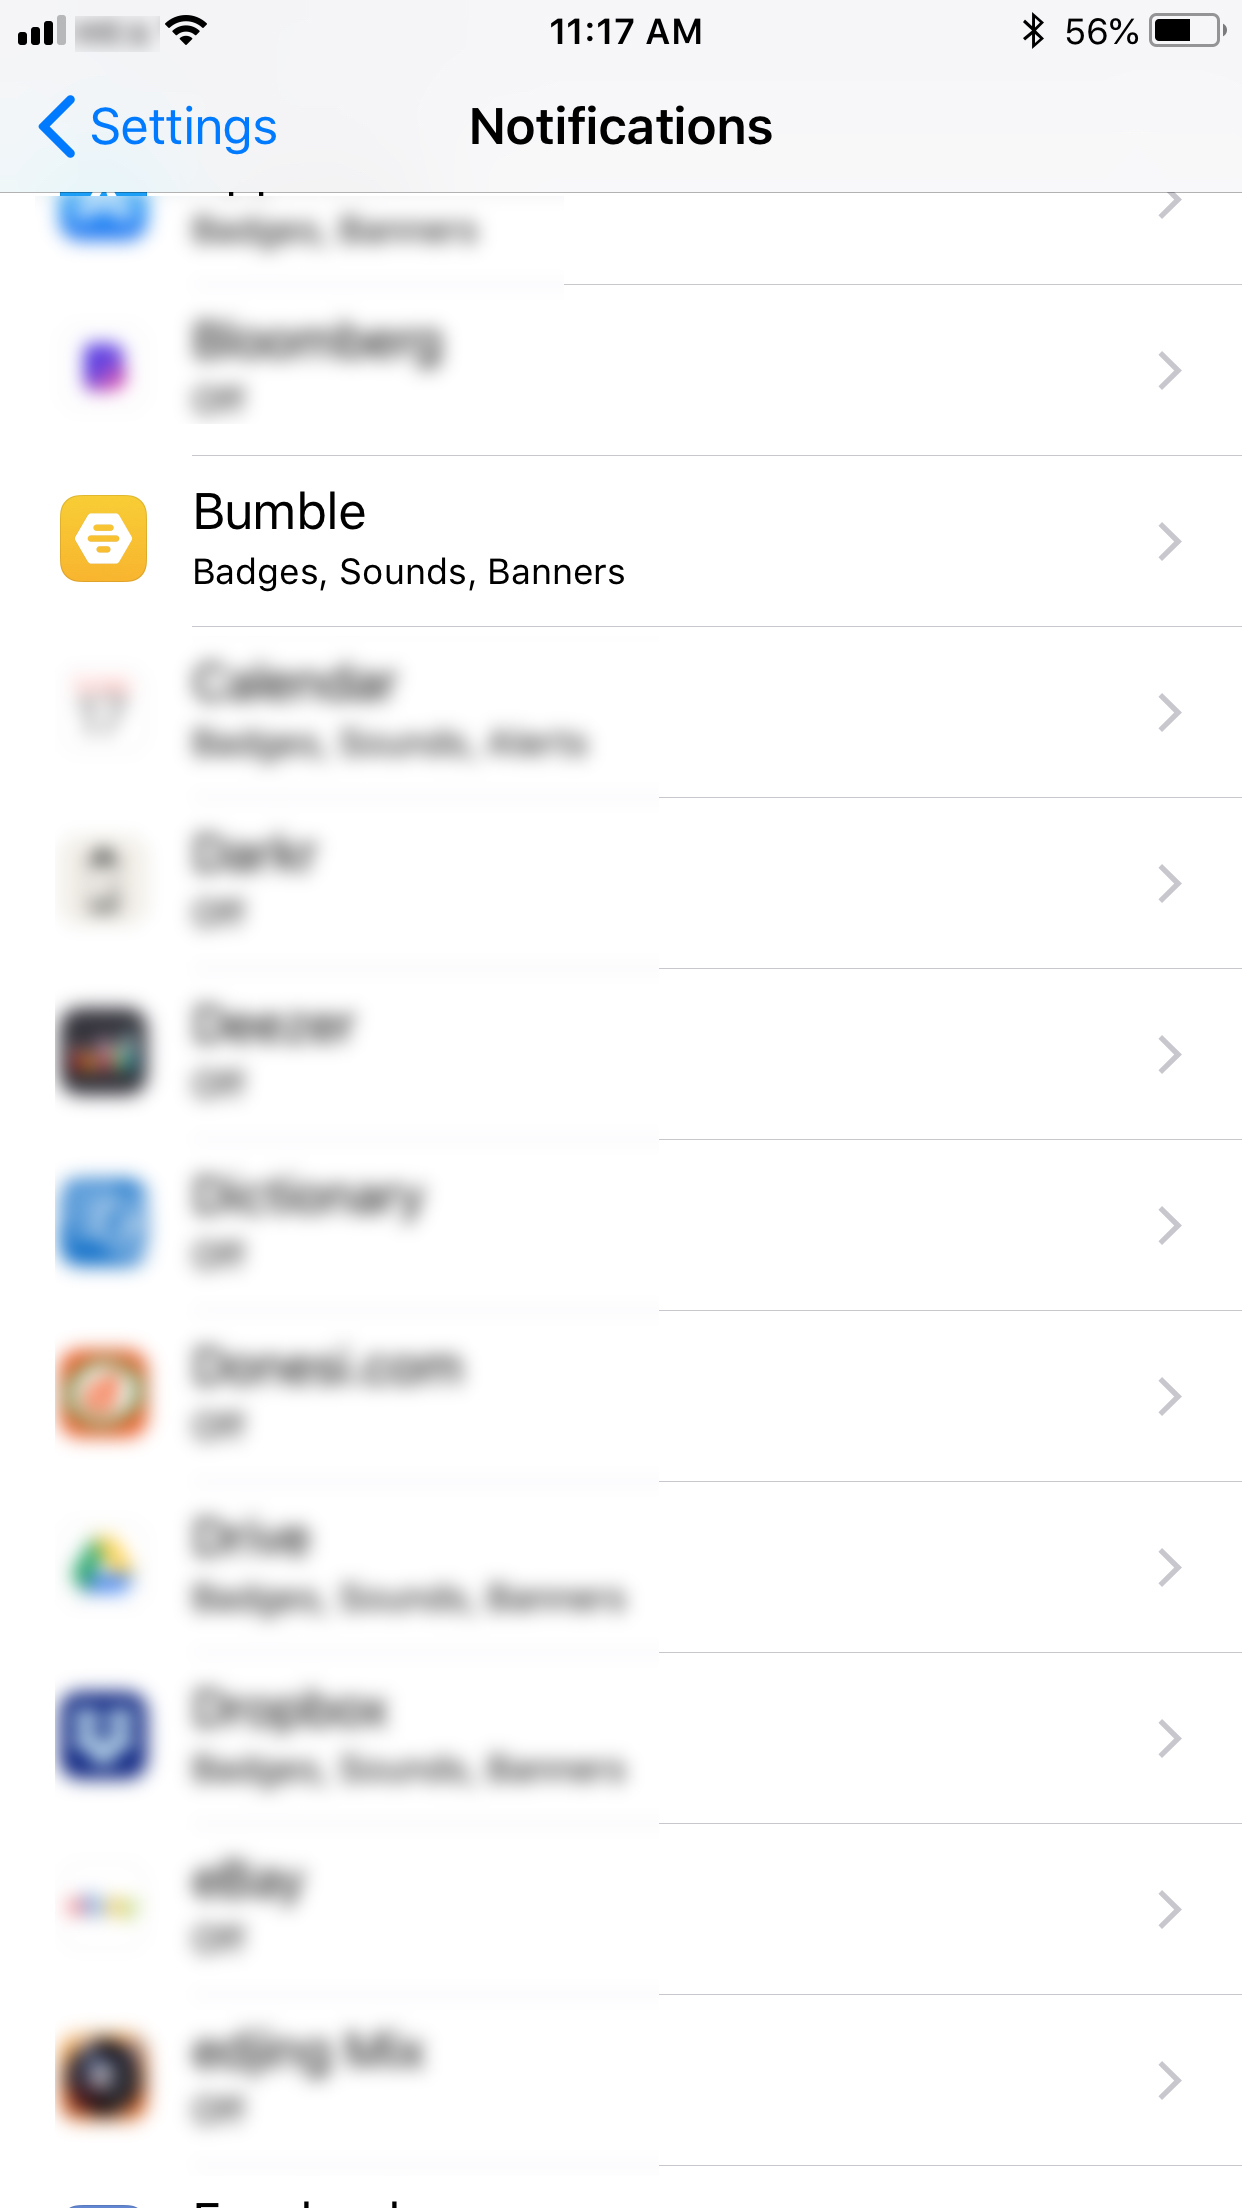 How to cancel bumble subscription